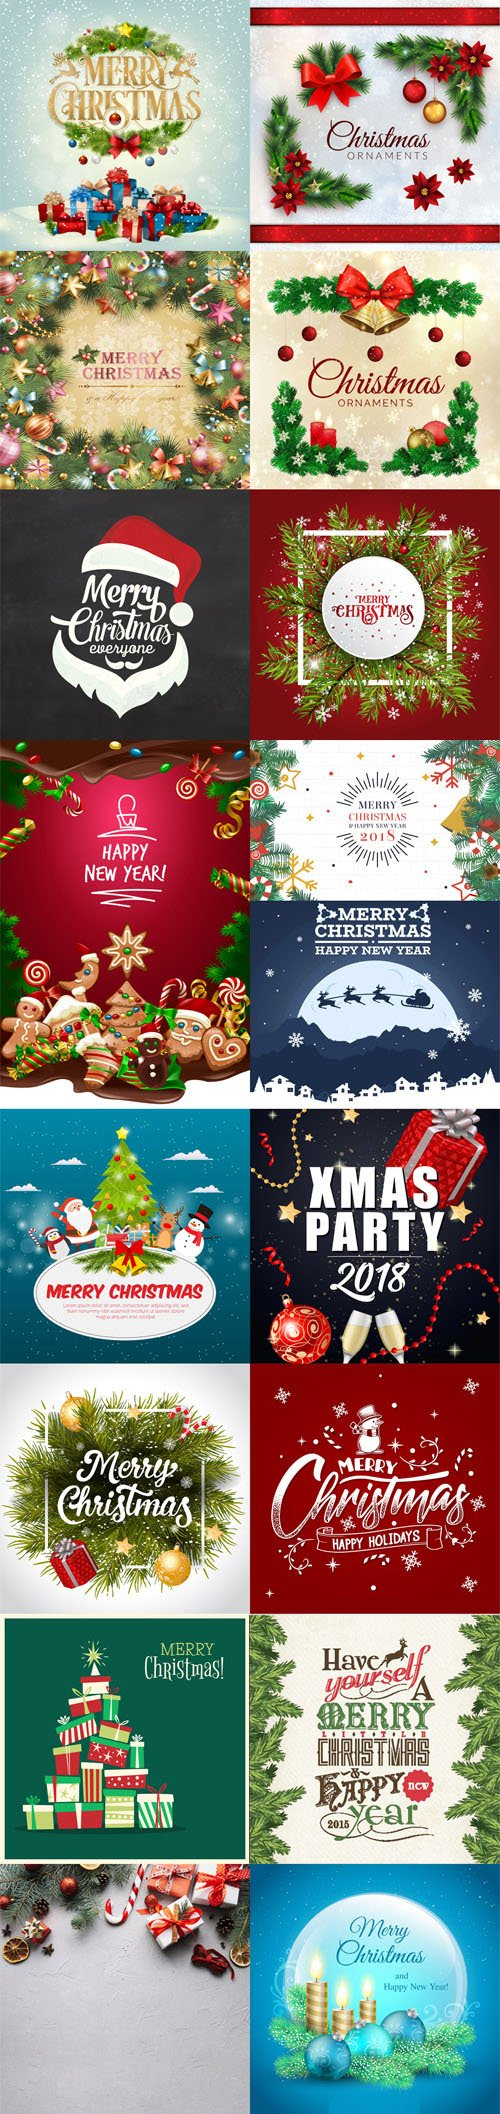 Christmas Backgrounds Vector Collection 2